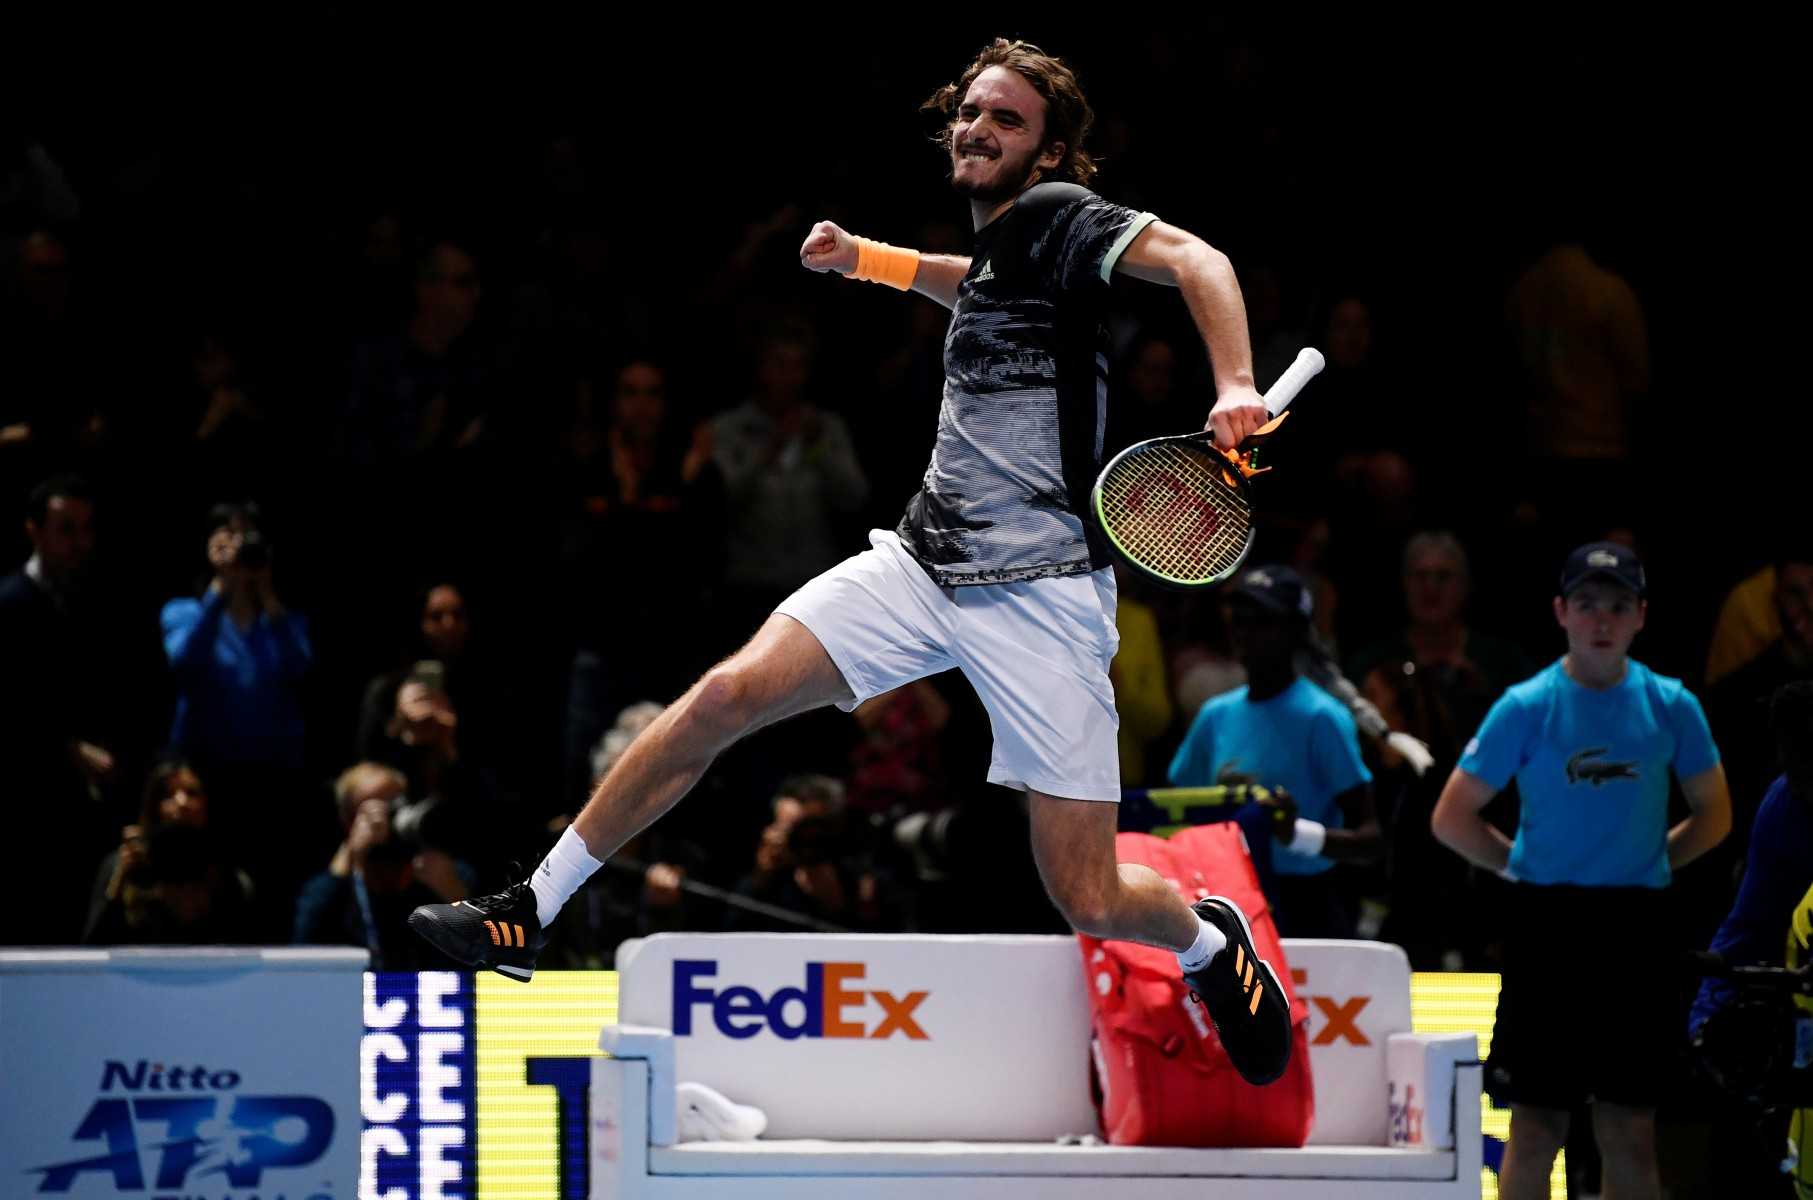 There was no love lost between the pair as Tsitsipas came through 7-6 6-4 at the O2 Arena